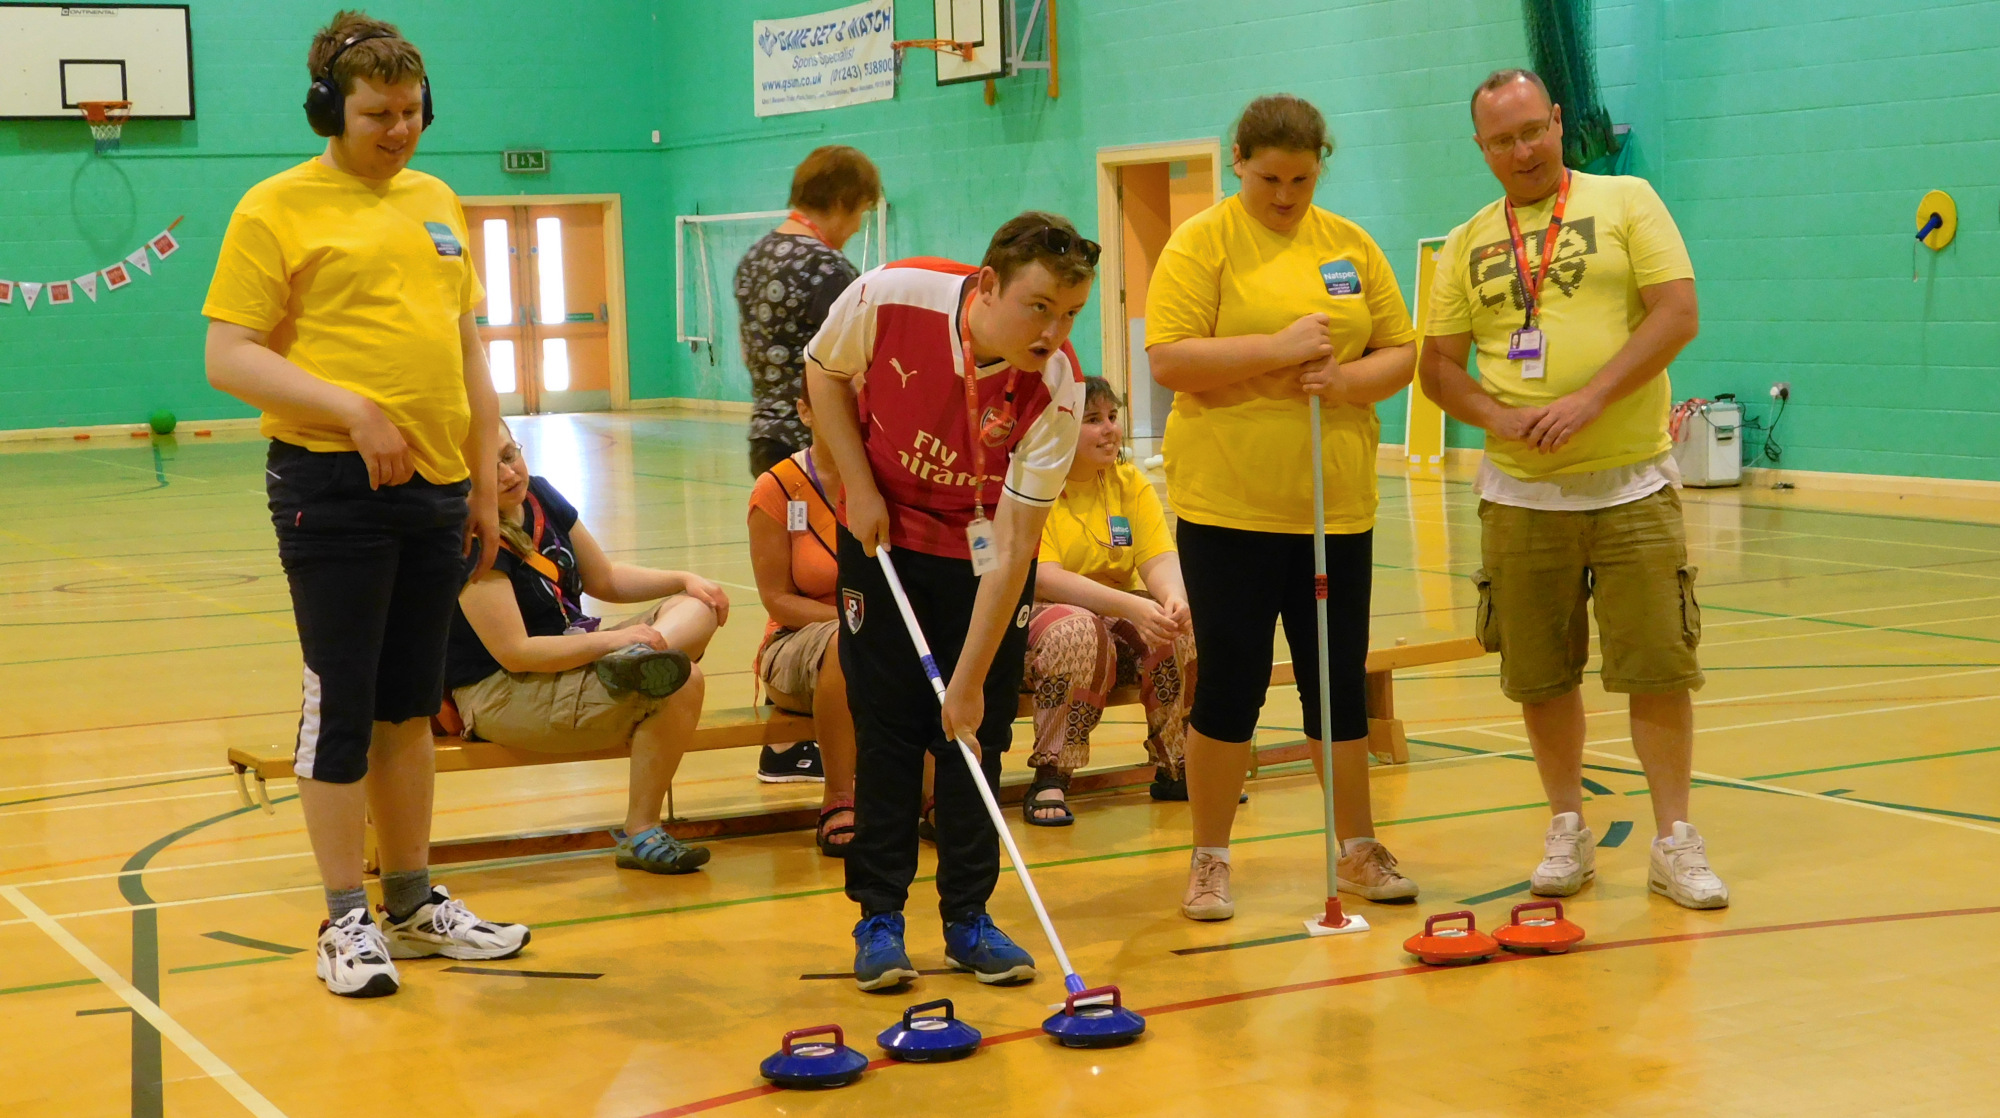 student engages in a shuffleboard type game at the Natspec Games